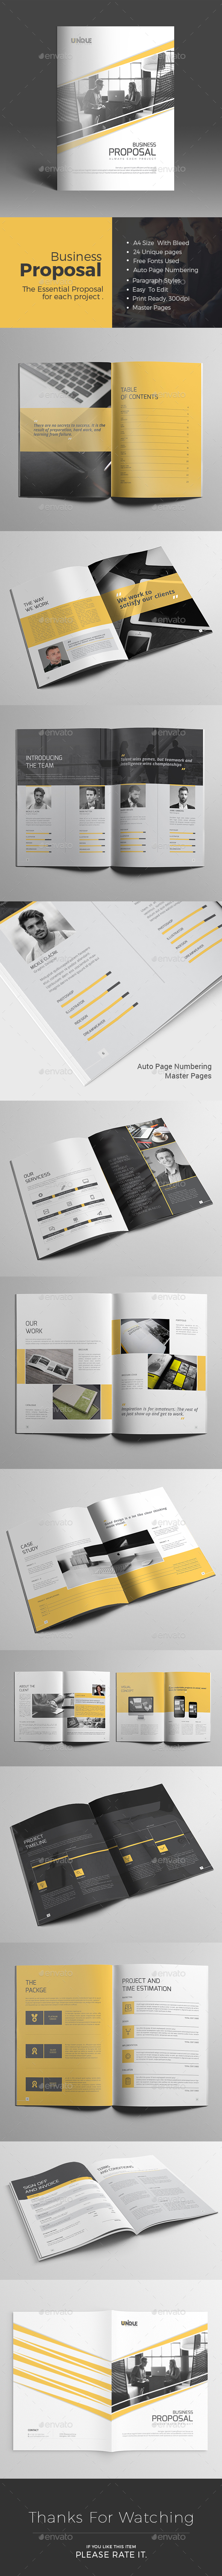 Proposal Word | Business proposal, Proposals and Template